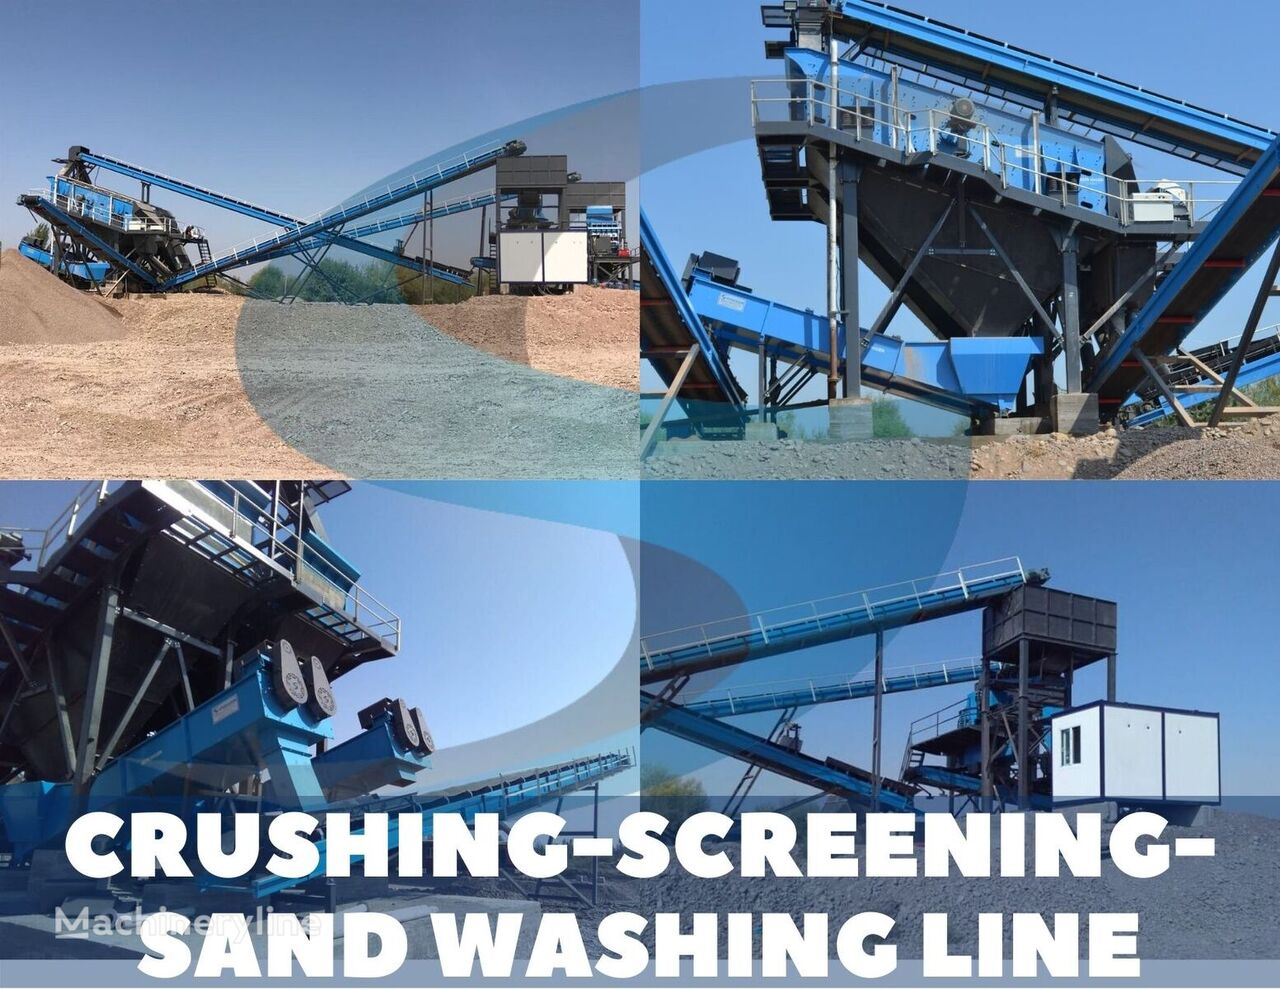 new SERMADEN 250 TPH FIXED CRUSHING-SCREENING-WASHING PLANT crushing plant